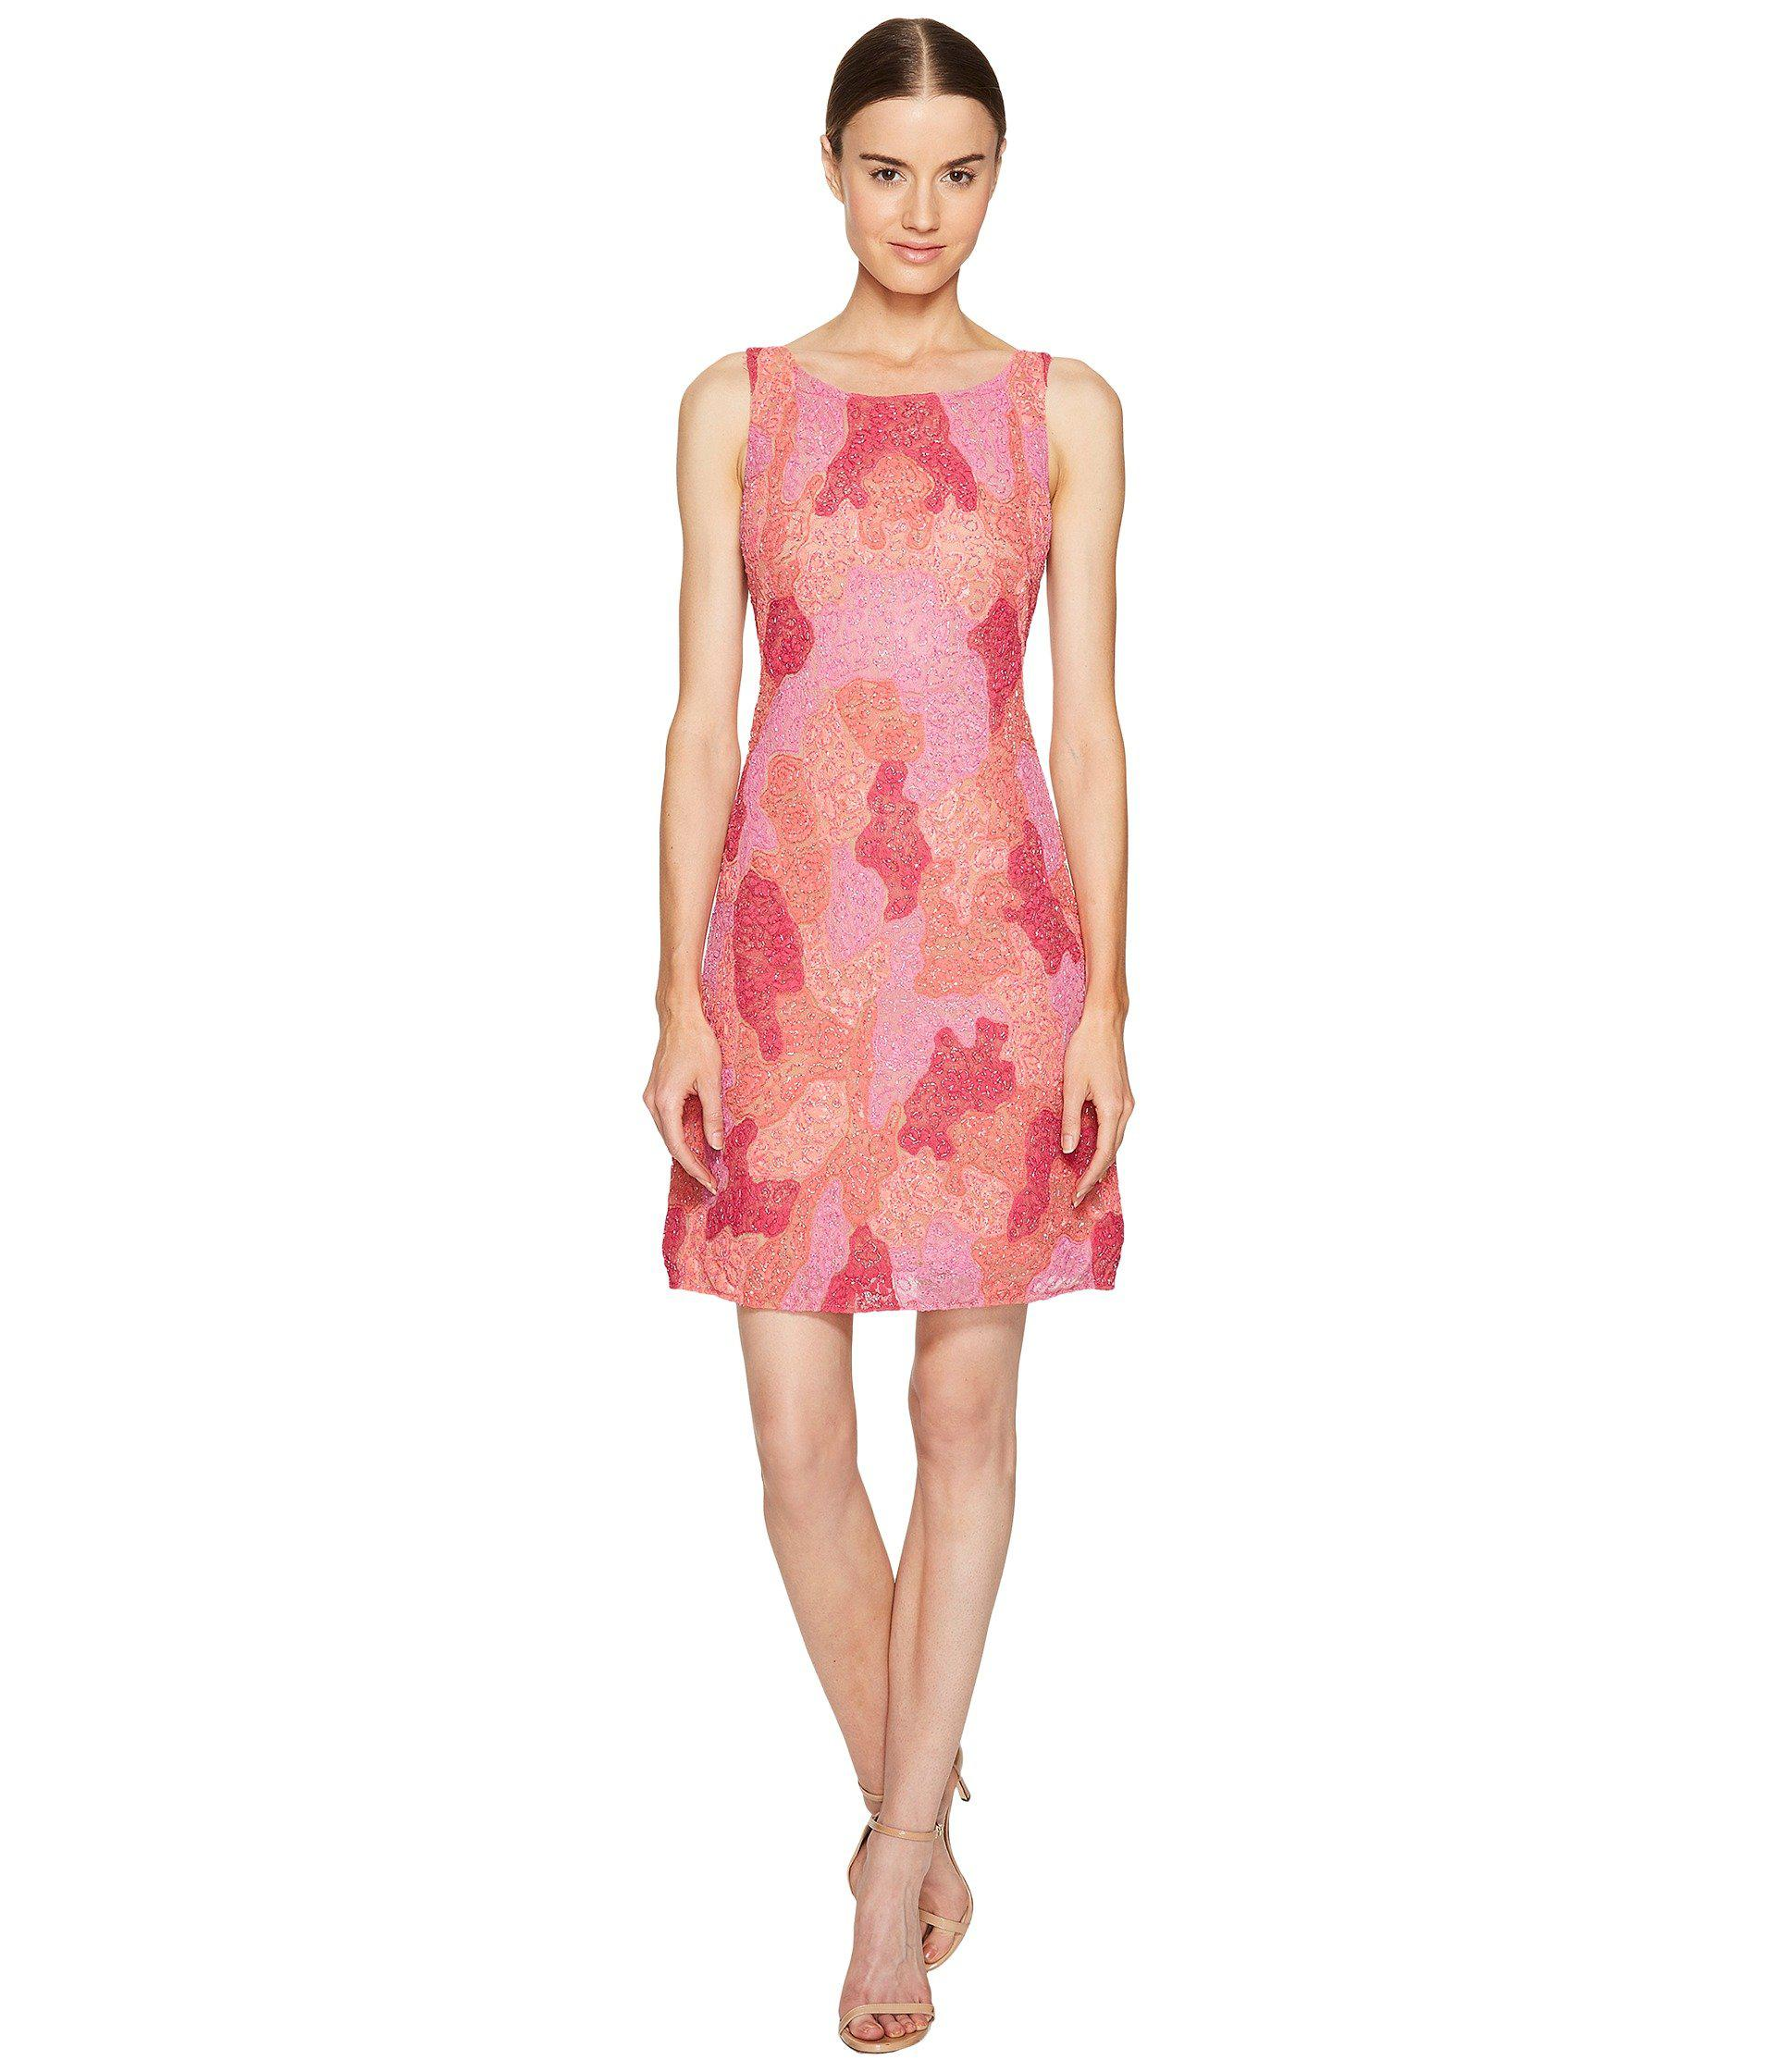 cccd45a80a7 Marchesa notte All Over Embroidered Cocktail Dress in Pink - Save 50 ...